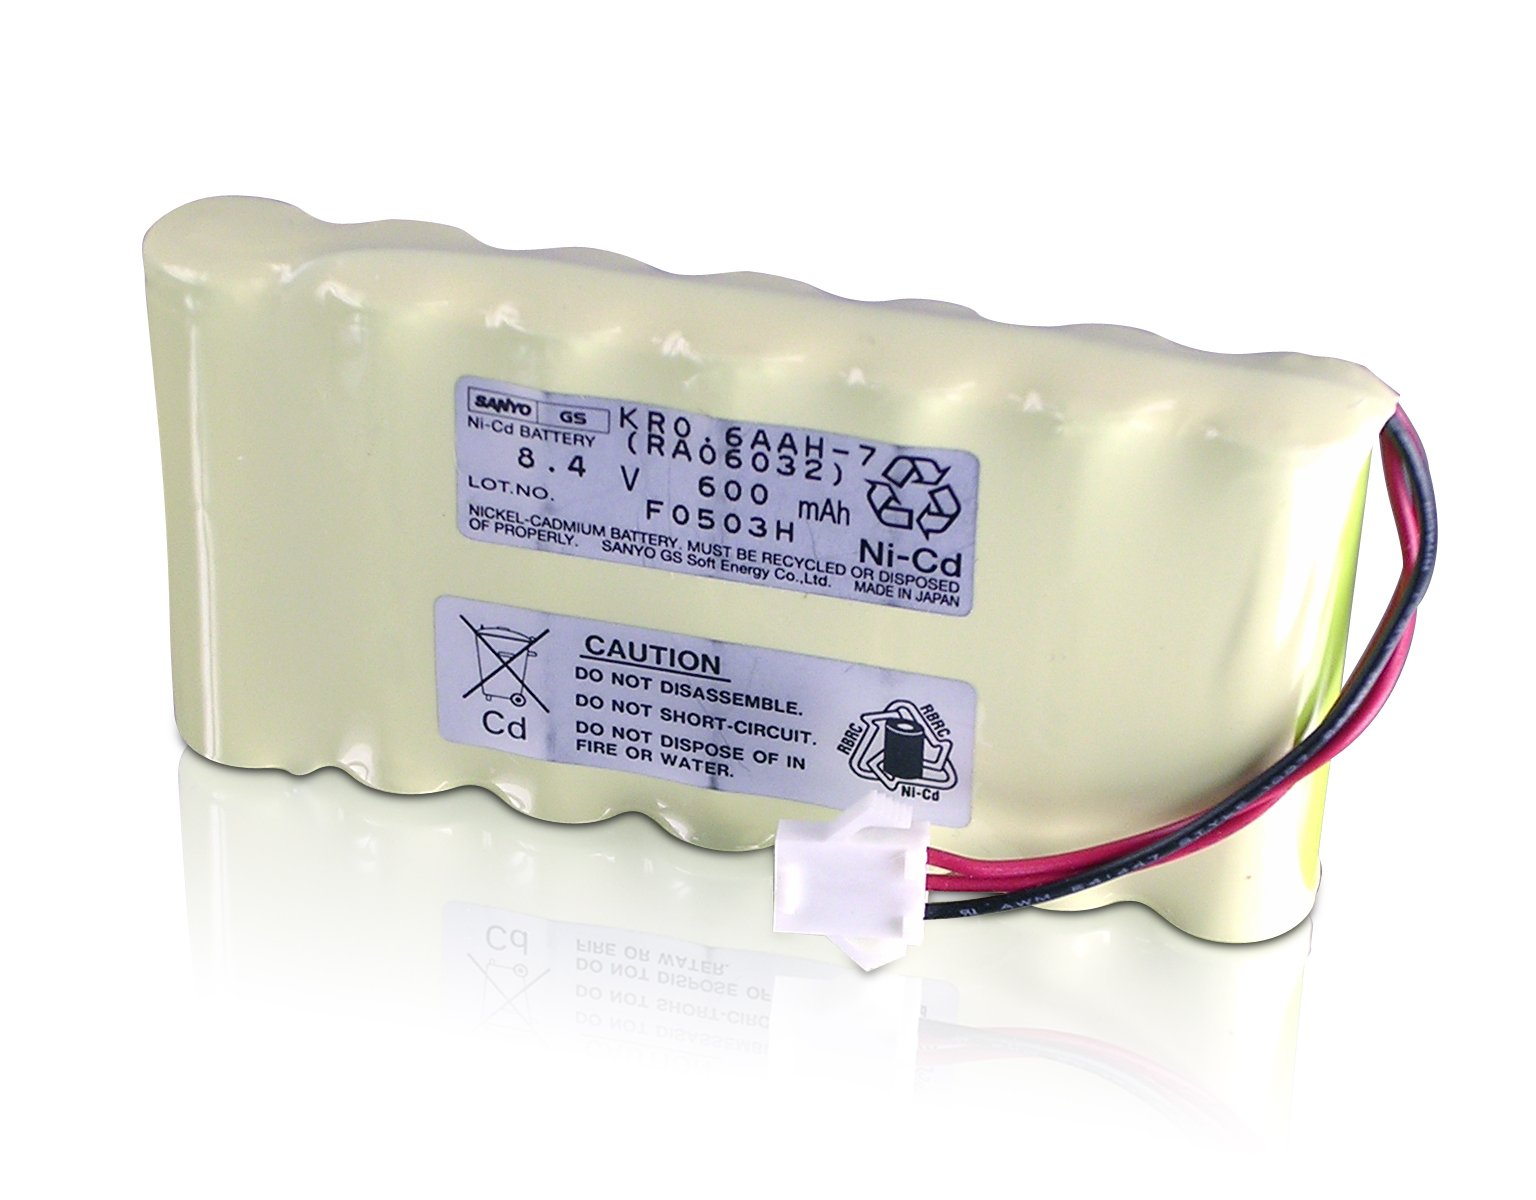 Lathem 7500E Rechargeable Operational Backup Battery, Up to 100 Registrations or 24 Hours (VIS6020)